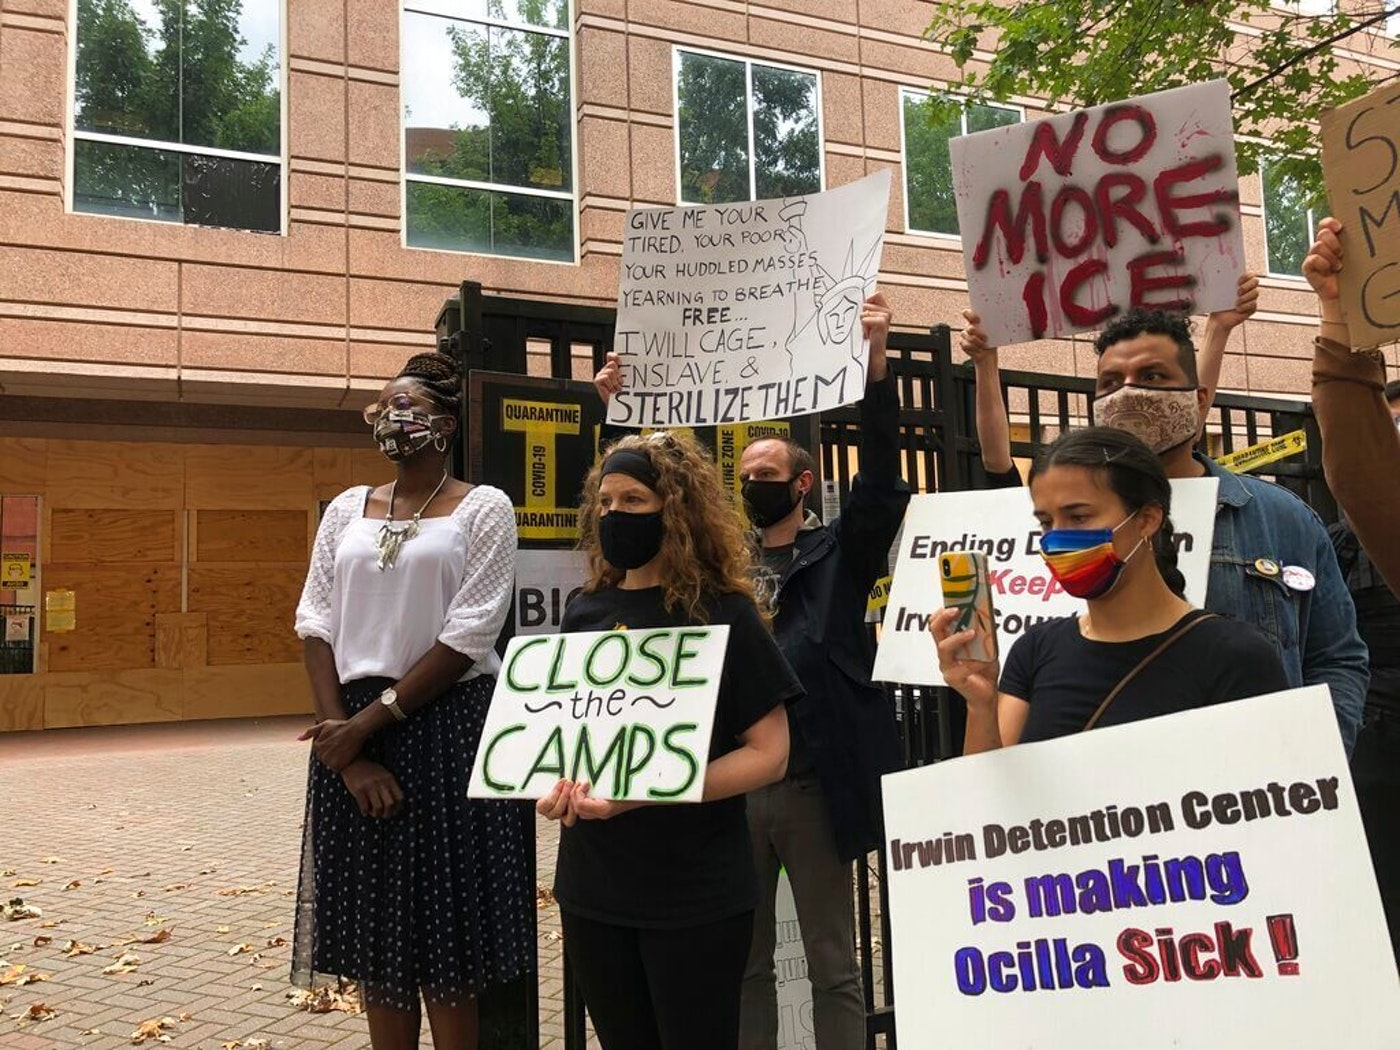 Dawn Wooten, left, a nurse at Irwin County Detention Center in Ocilla, Georgia, speaks at a Tuesday, Sept. 15, 2020 news conference in Atlanta protesting conditions at the immigration jail. Wooten says authorities denied COVID-19 tests to immigrants, performed questionable hysterectomies and shredded records in a complaint filed to the inspector general of the U.S. Department of Homeland Security. (AP Photo/Jeff Amy)